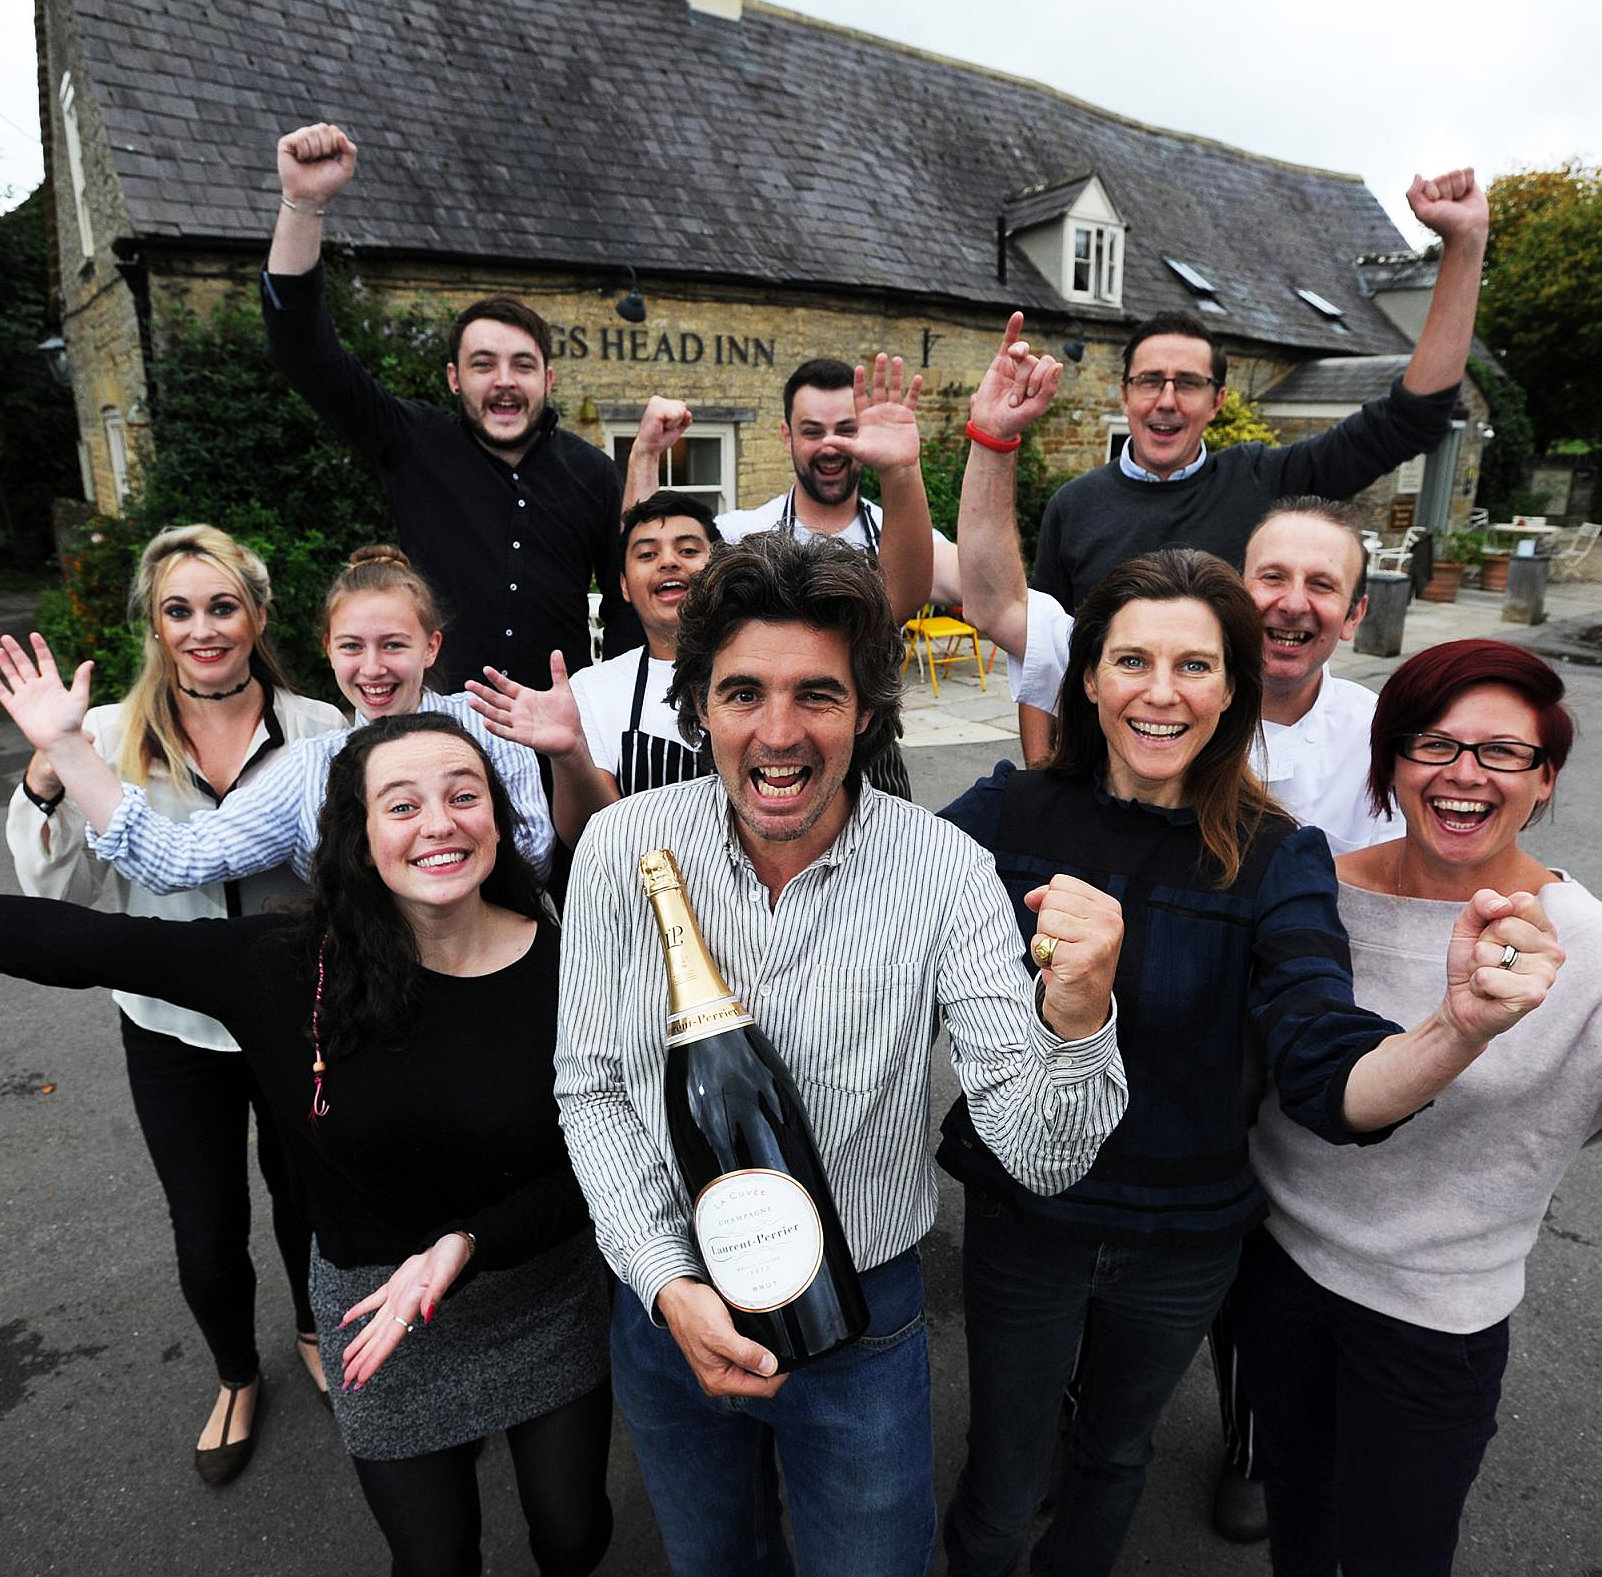 https://thekingsheadinn.net/wp-content/uploads/2017/09/The-Good-Pub-Guide-Winners-For-Best-Pub-2018-The-Kings-Head-Inn-at-Bledington.jpg